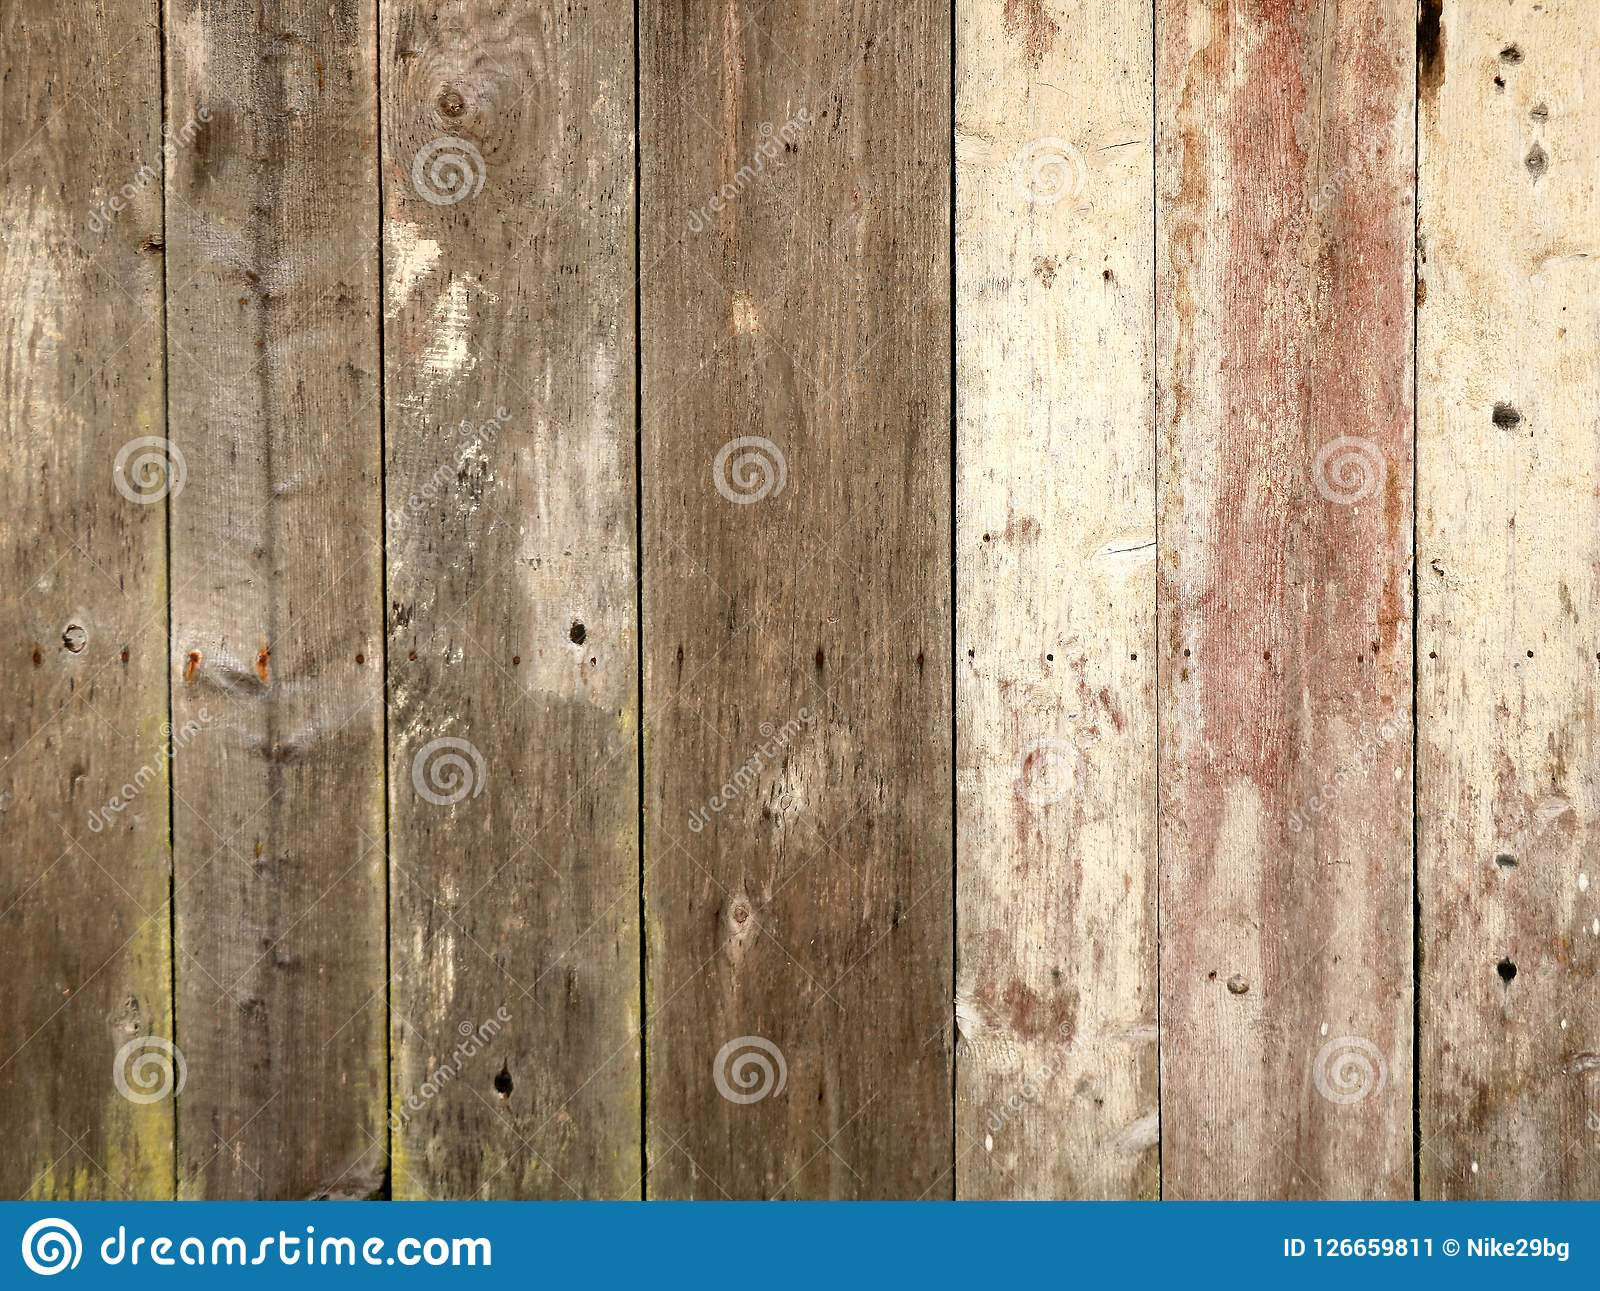 Wooden plank texture wall as a background